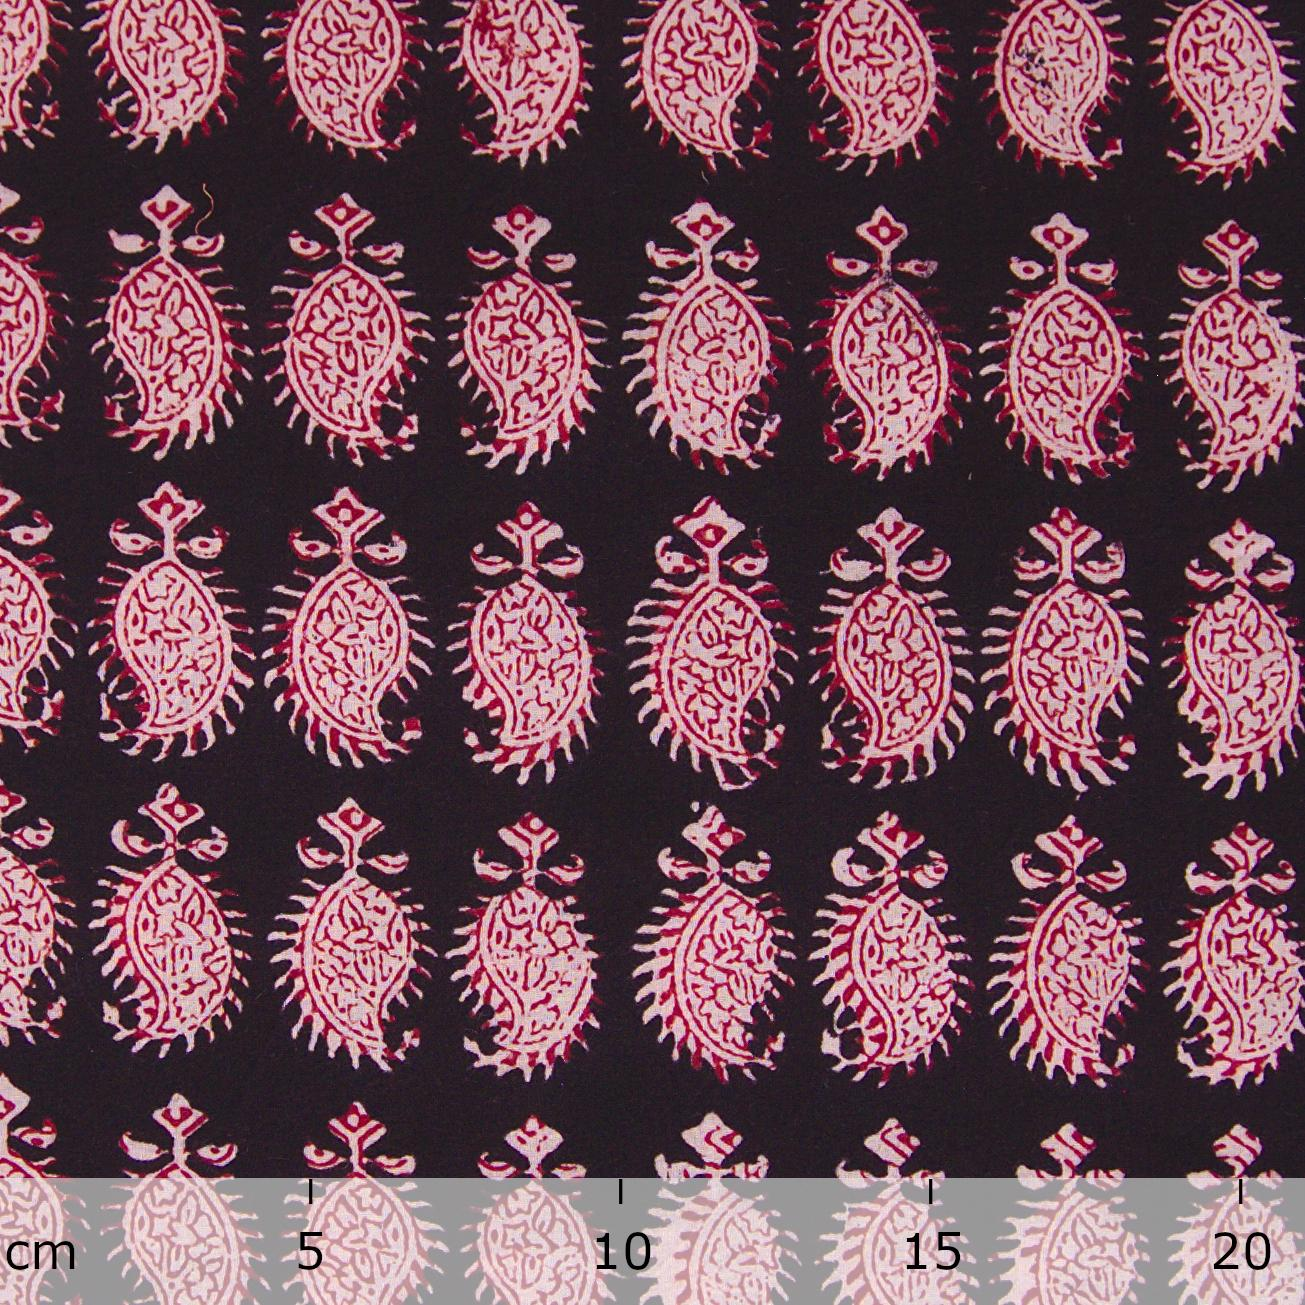 100% Block -Printed Cotton Fabric From India - Cactus Design - Iron Rust Black & Alizarin Red Dyes - Ruler - Live